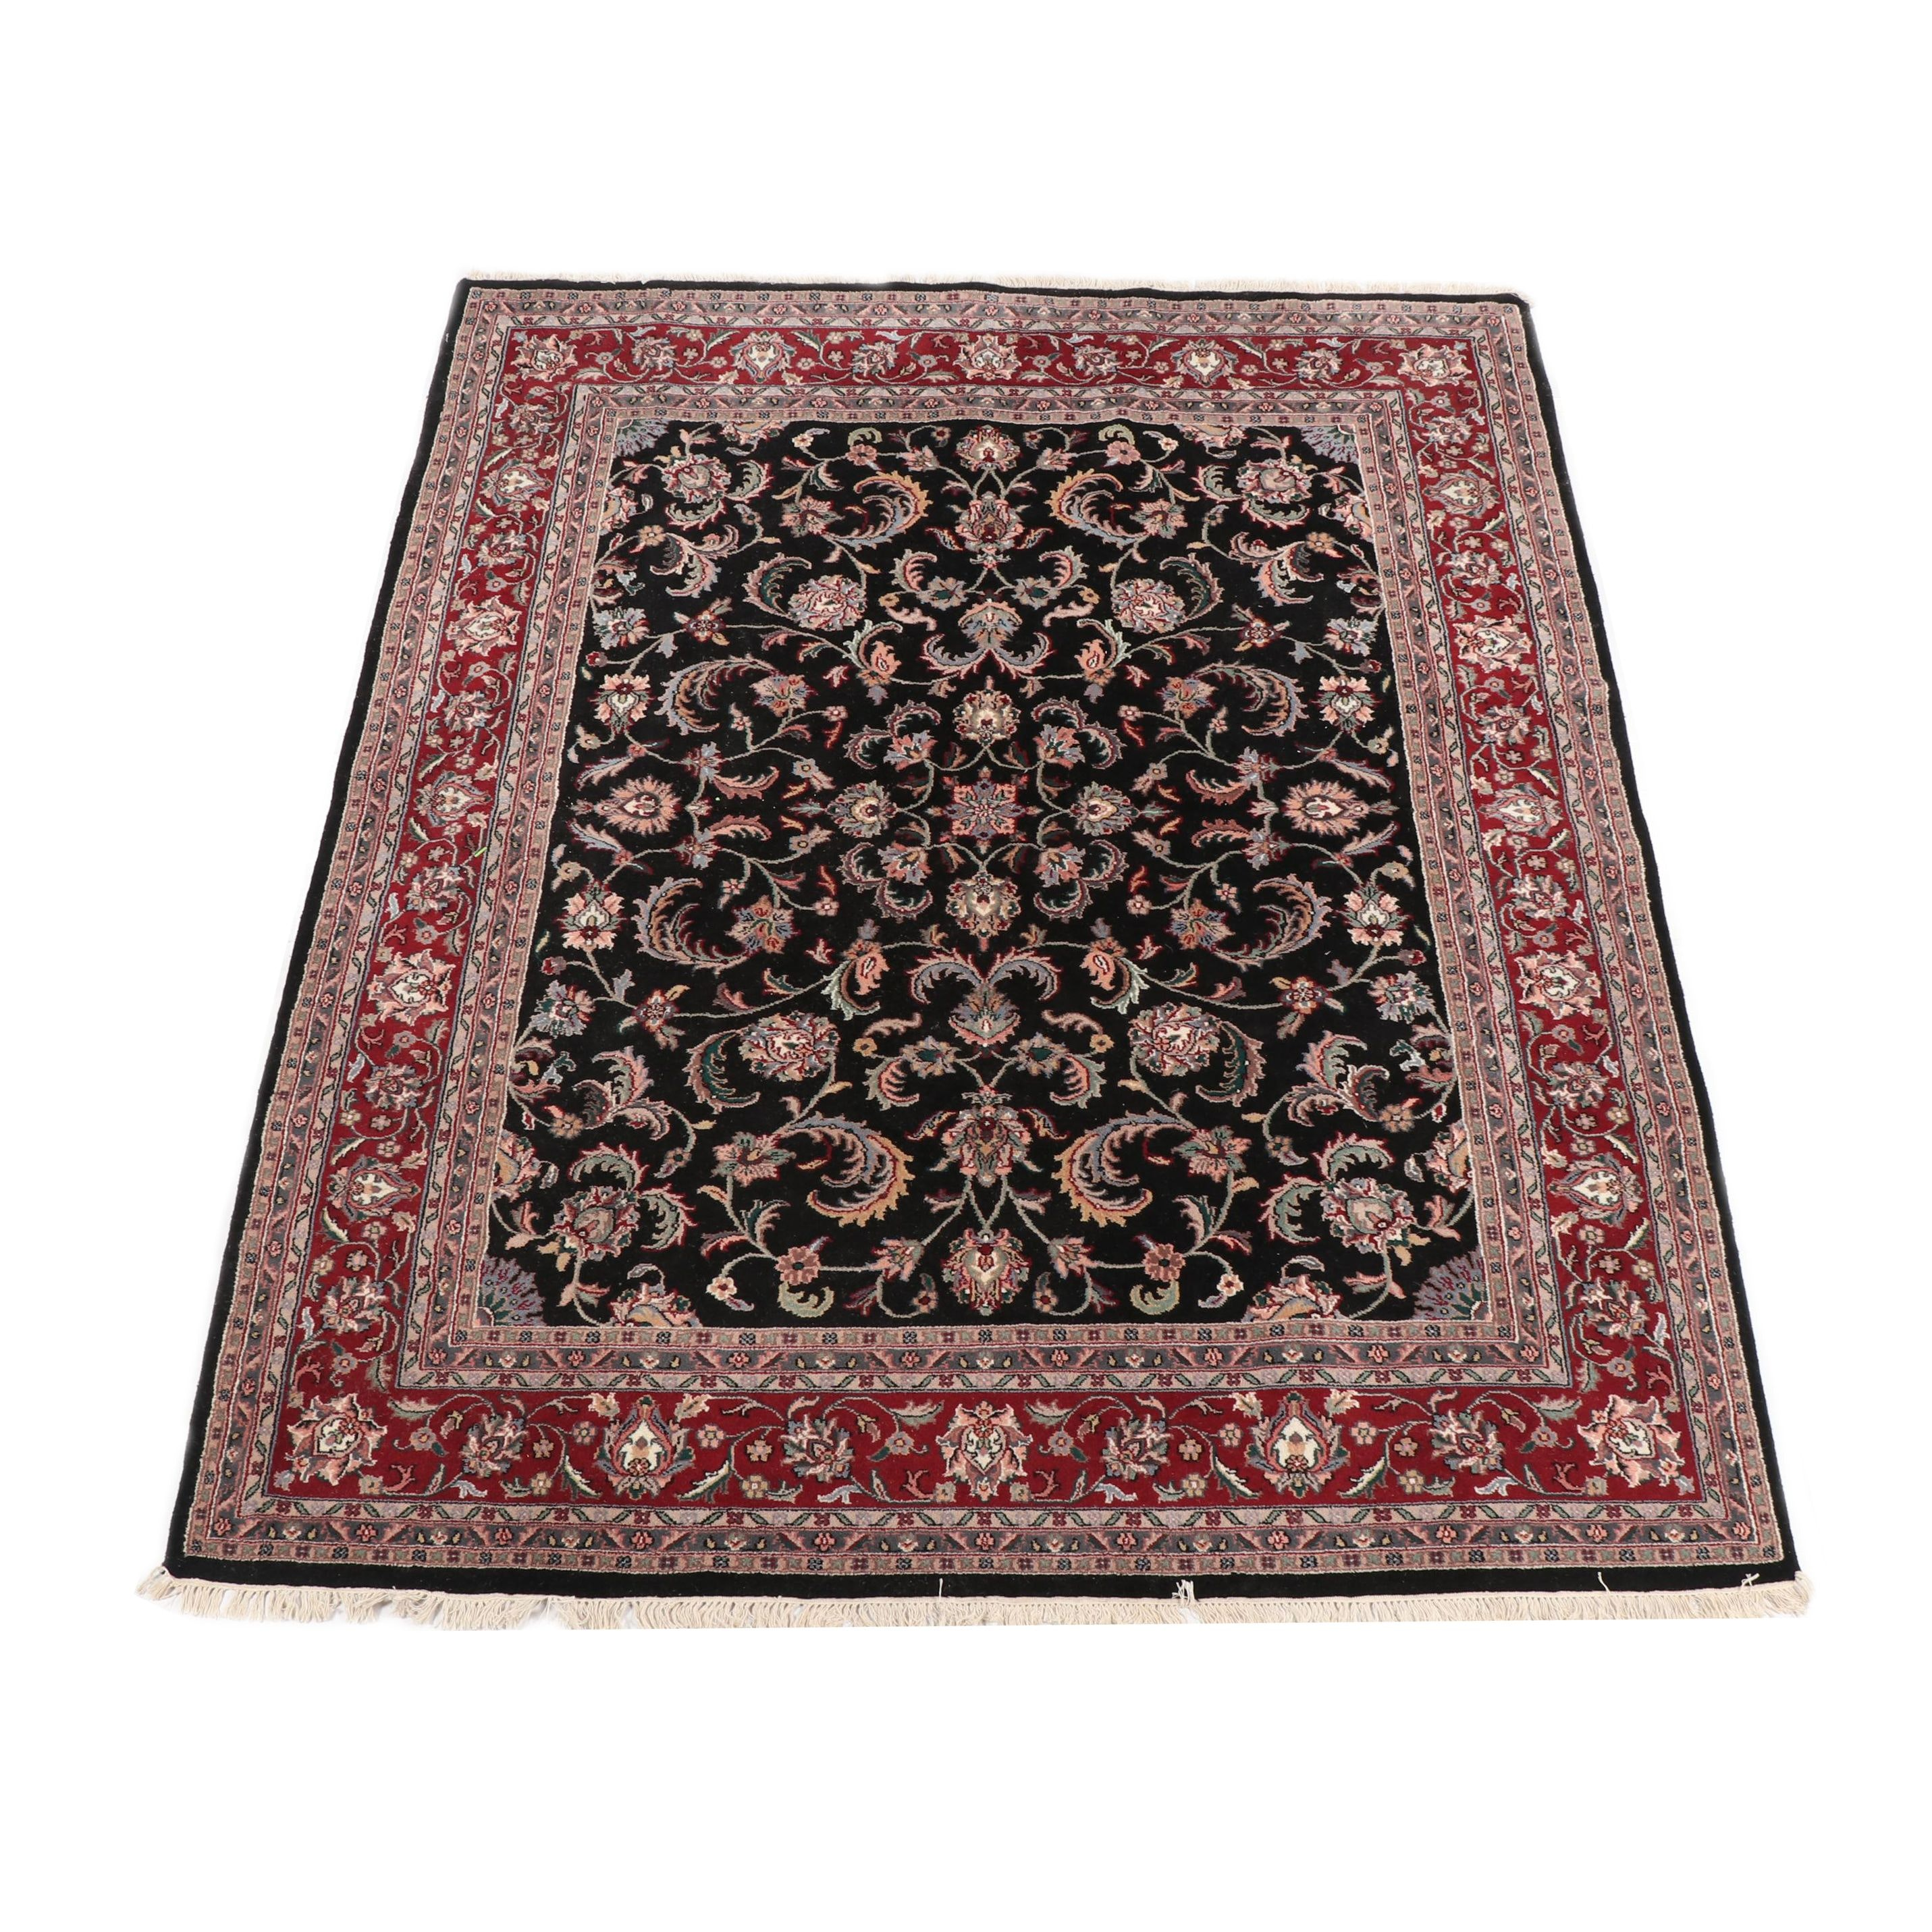 Hand-Knotted Indo-Persian Agra Wool Rug